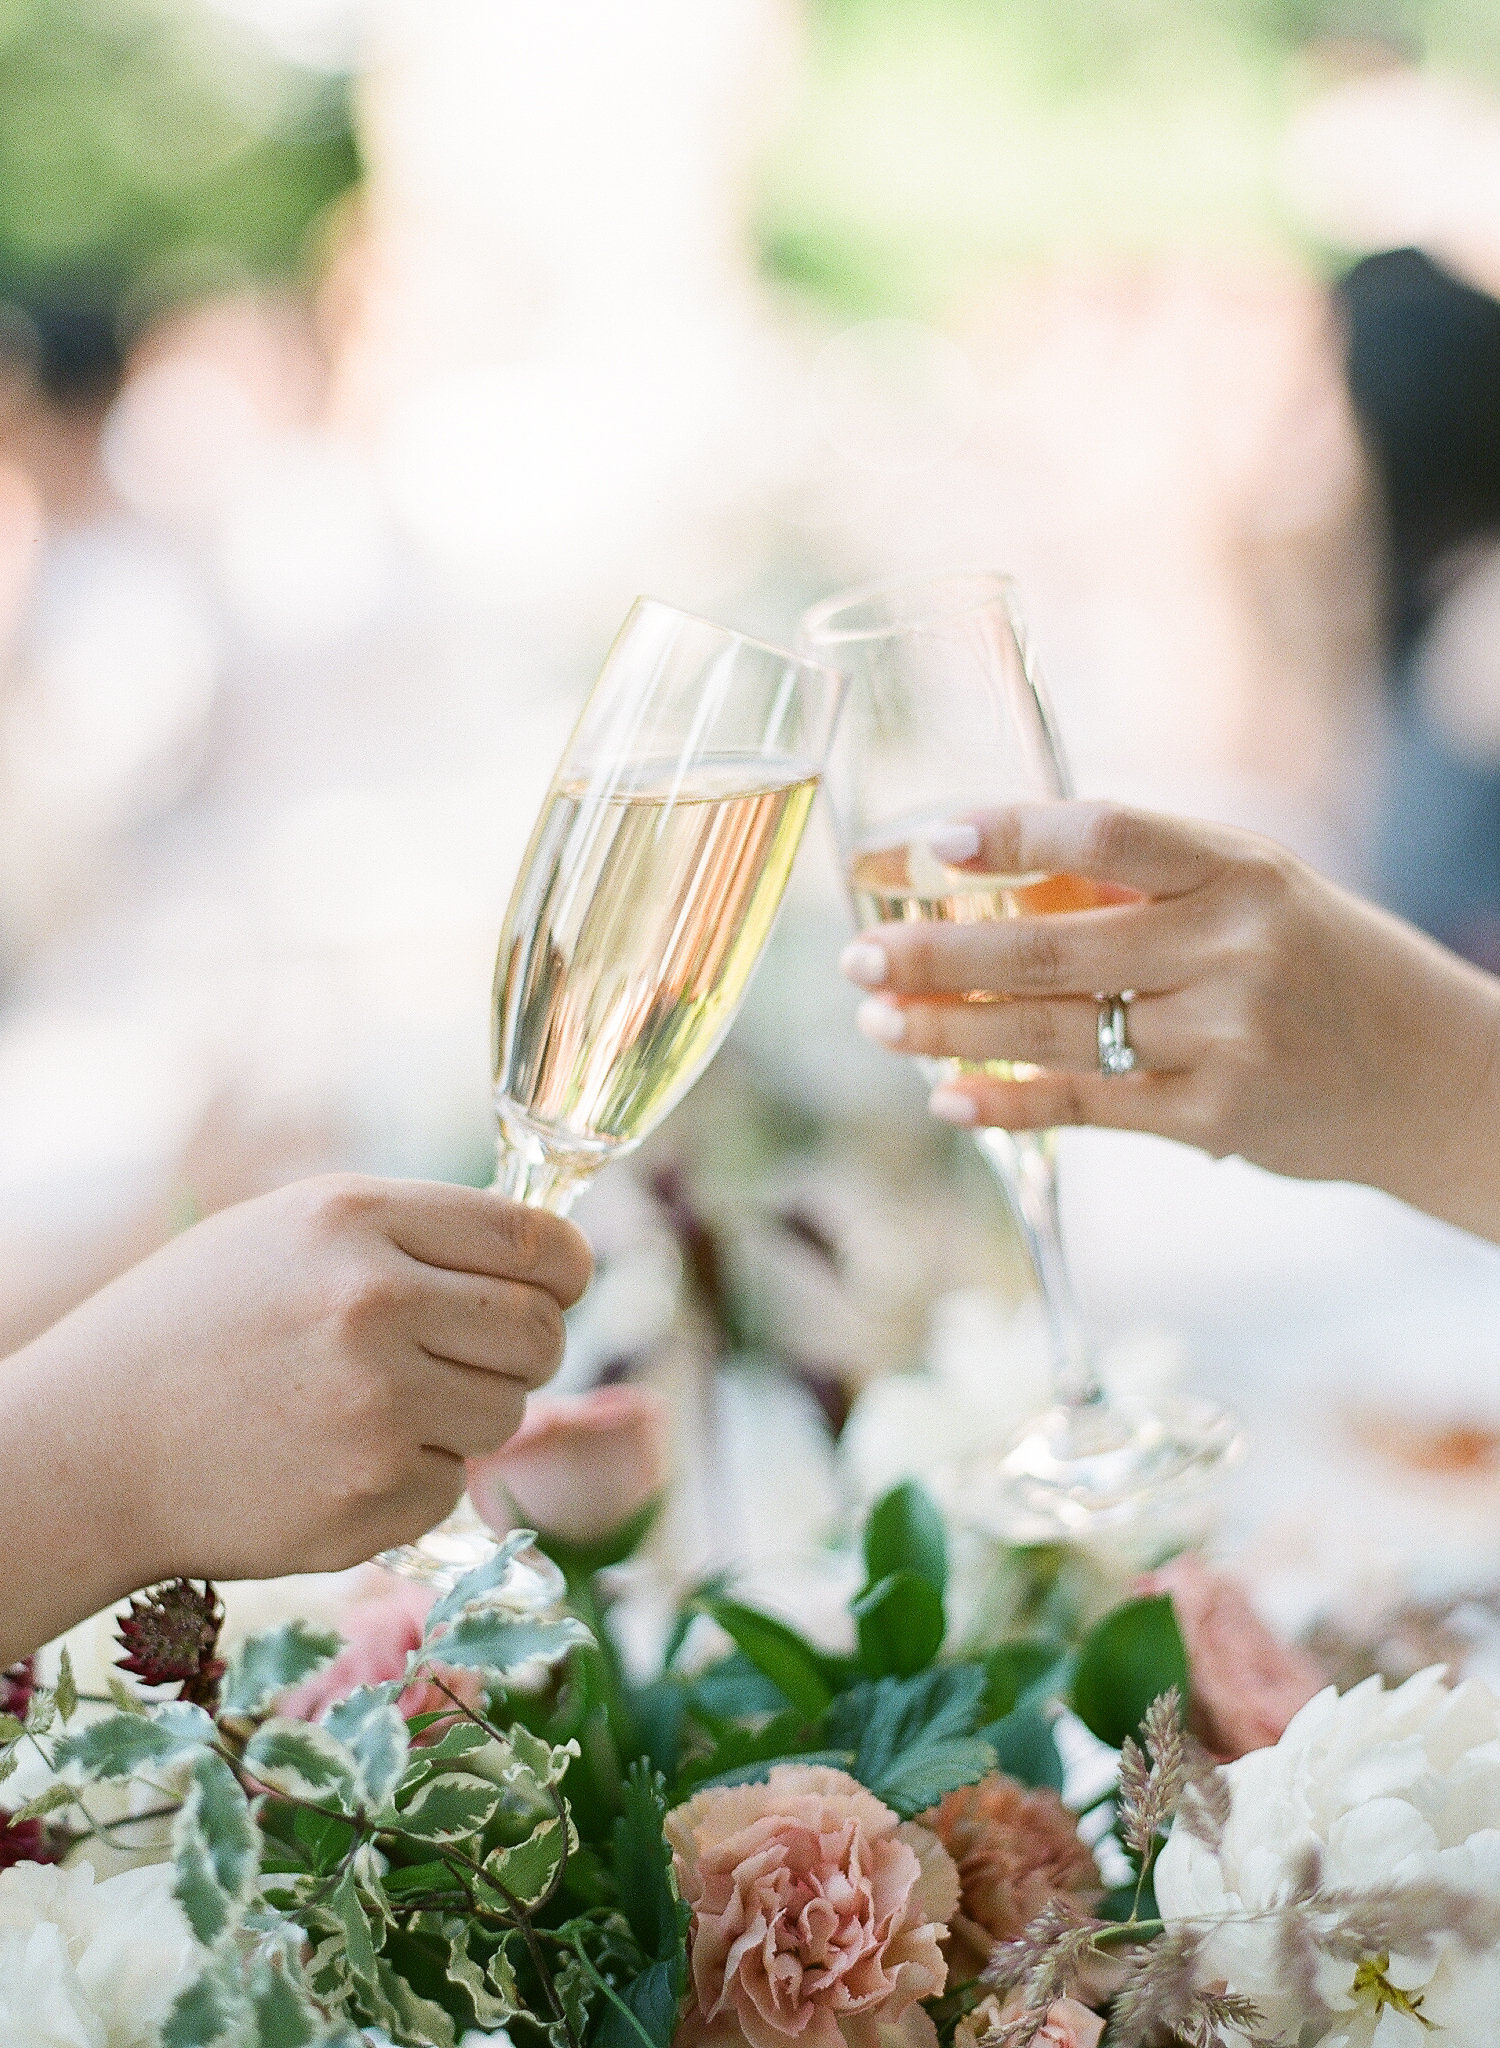 4 Ideas for an Unforgettable Champagne Toast at Your Wedding